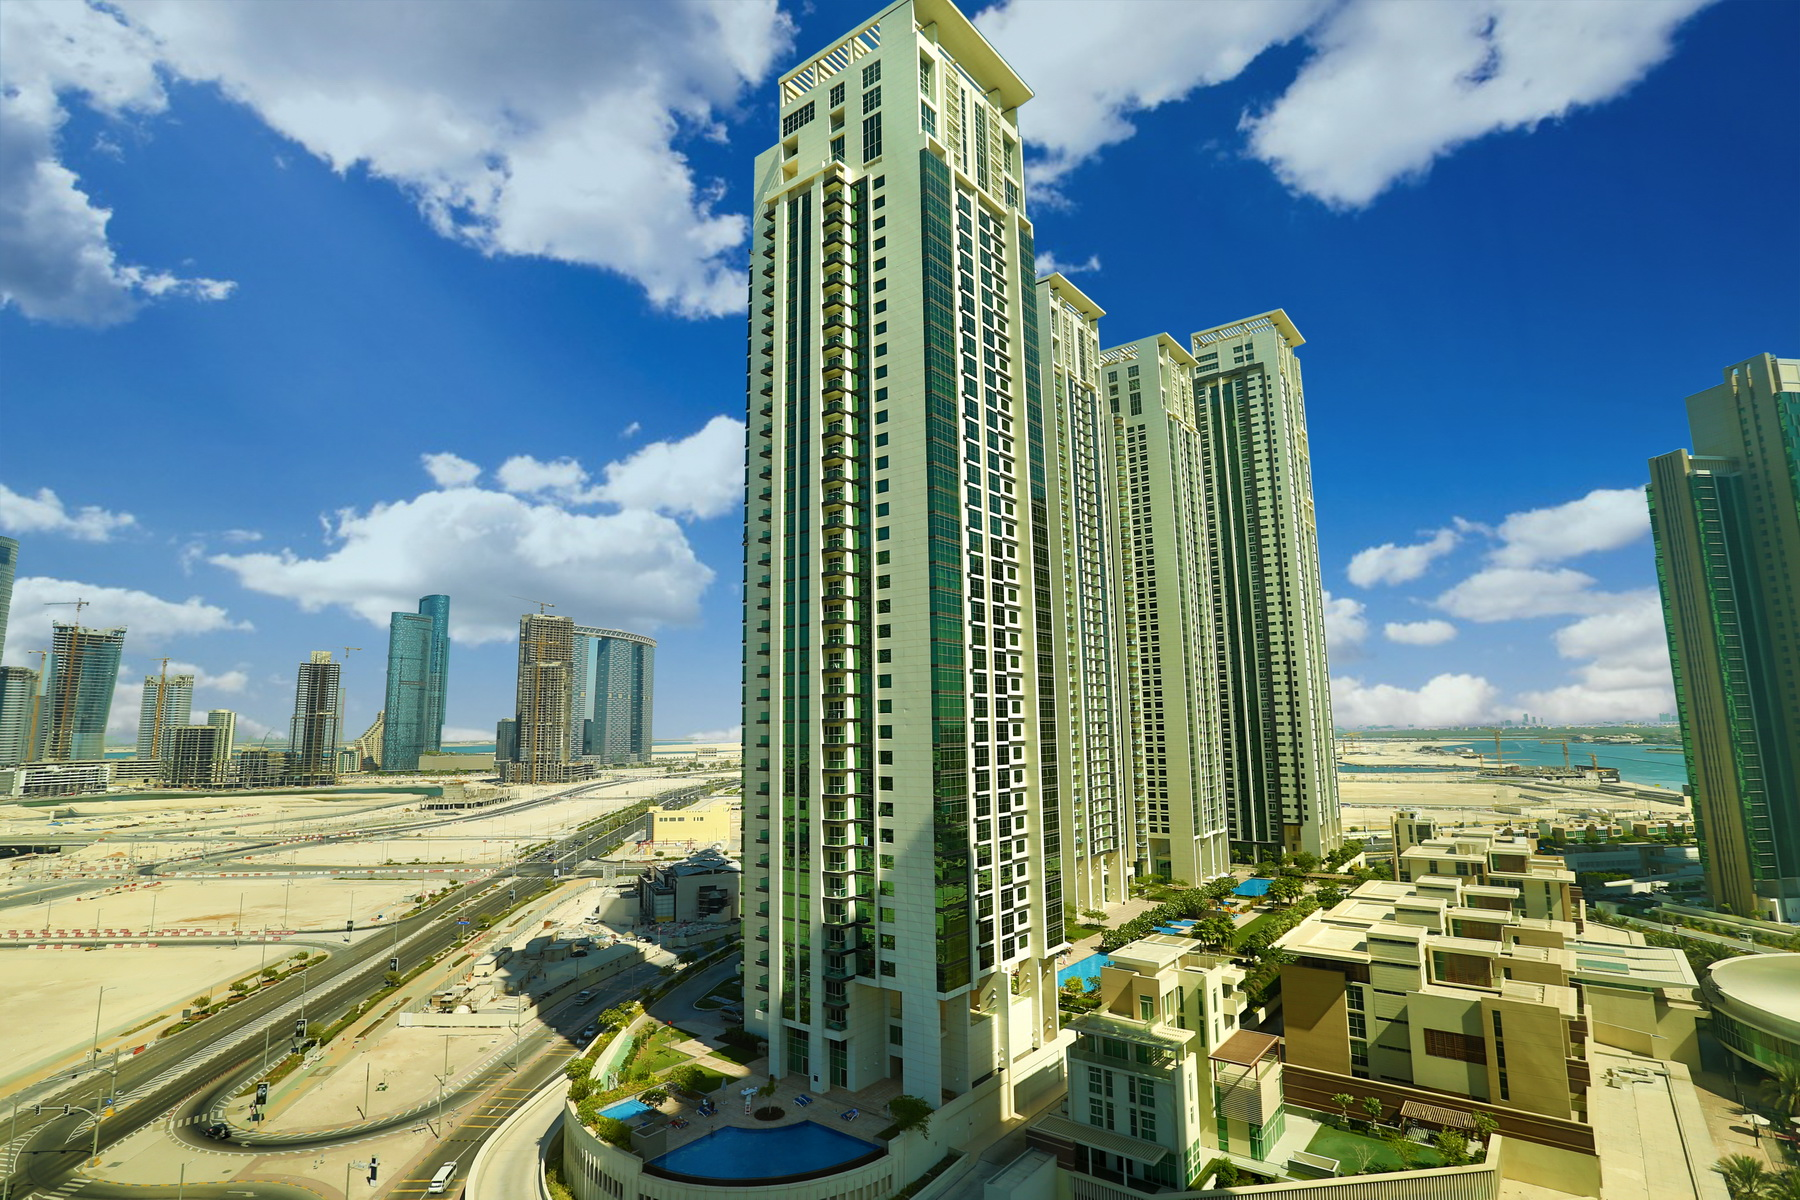 Studio - 1BR - 2BR - 3BR - 4BR Apartment - Abu Dhabi - UAE - Al Reem Island - Marina Square - Outside View (13).JPG